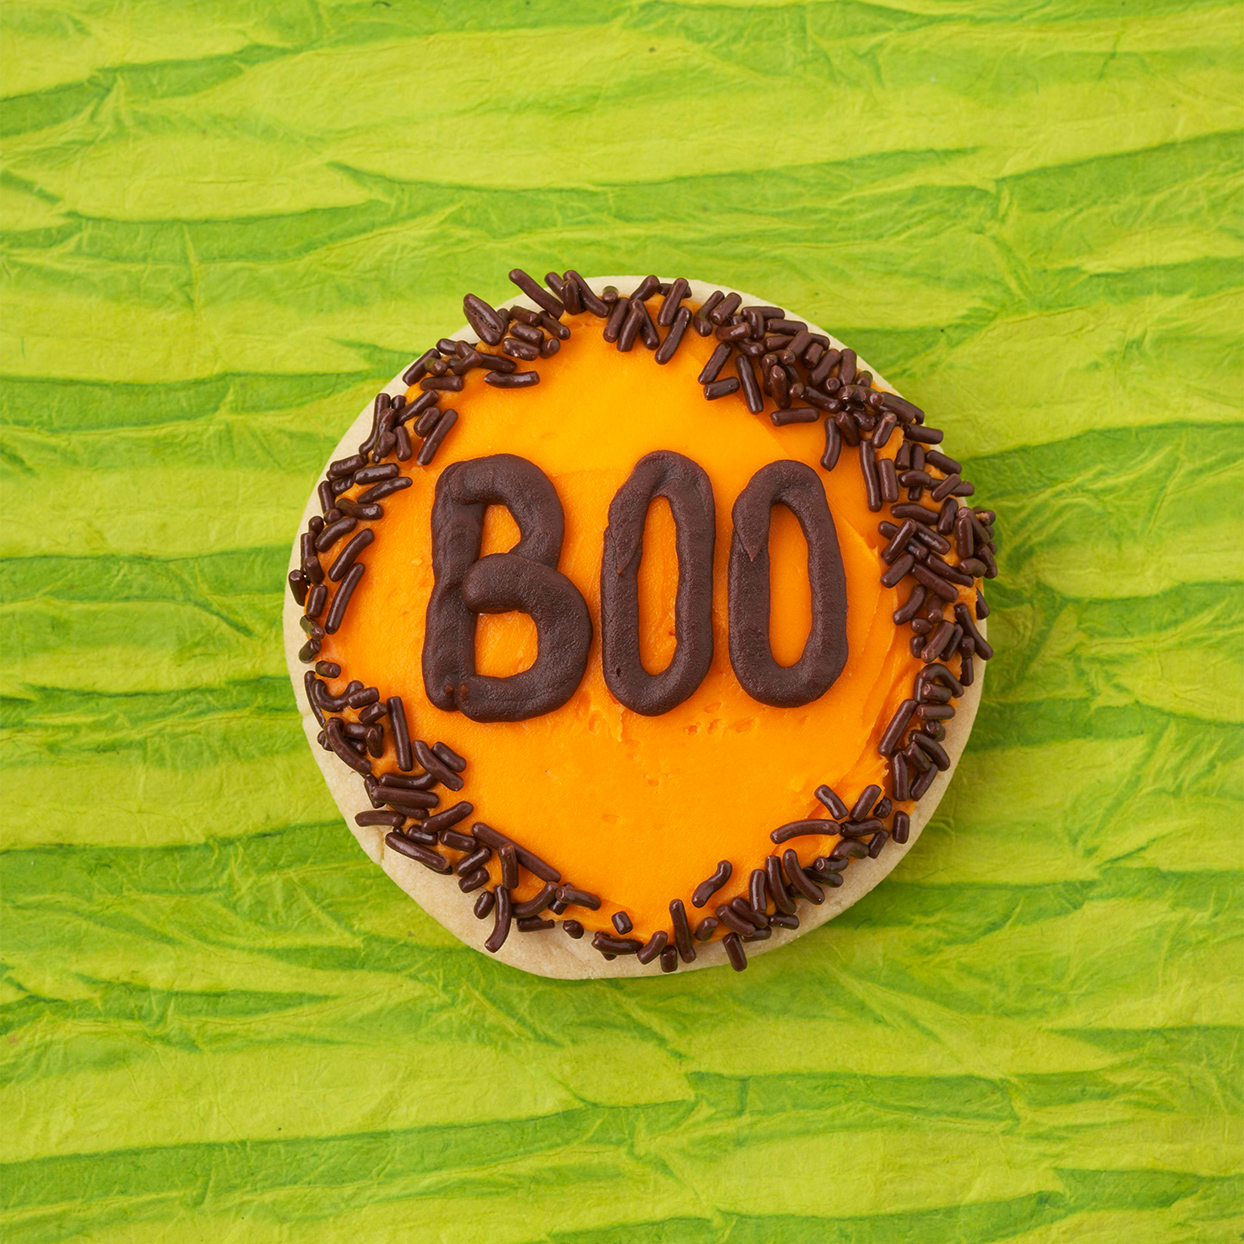 Boo Halloween Cookie